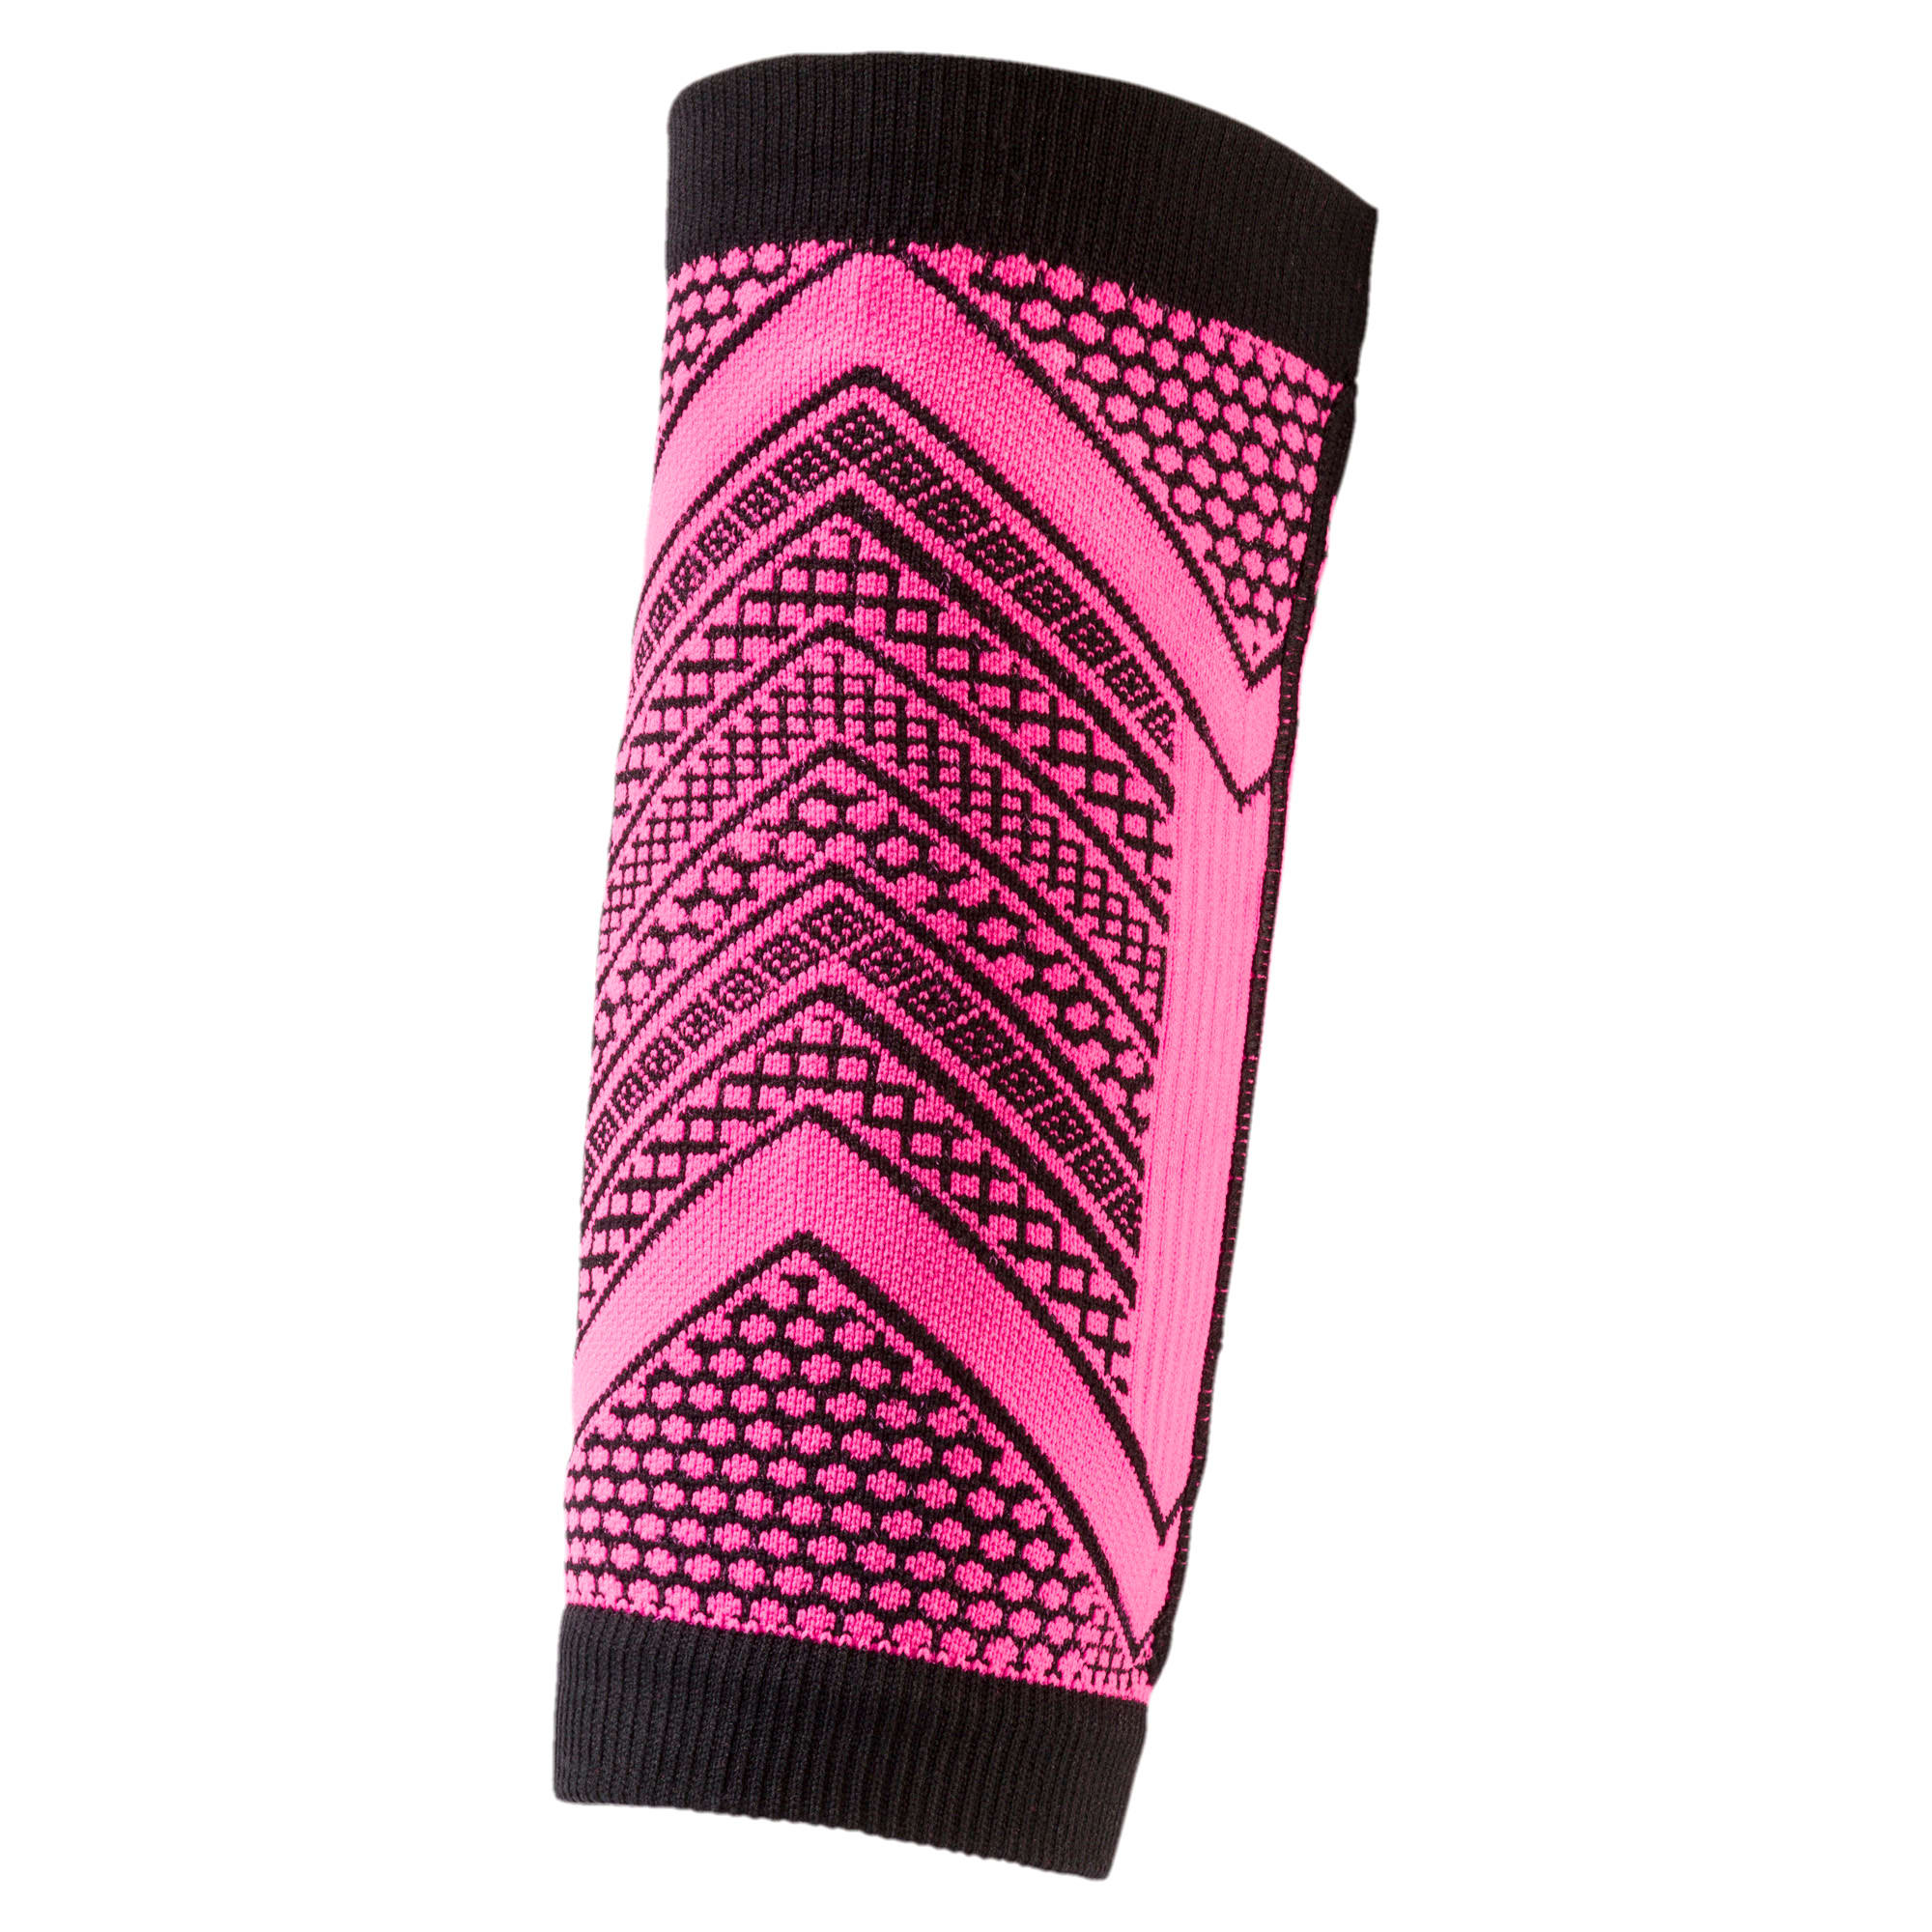 Thumbnail 2 of Running evoKNIT Forearm Band, KNOCKOUT PINK-Puma Black, medium-IND